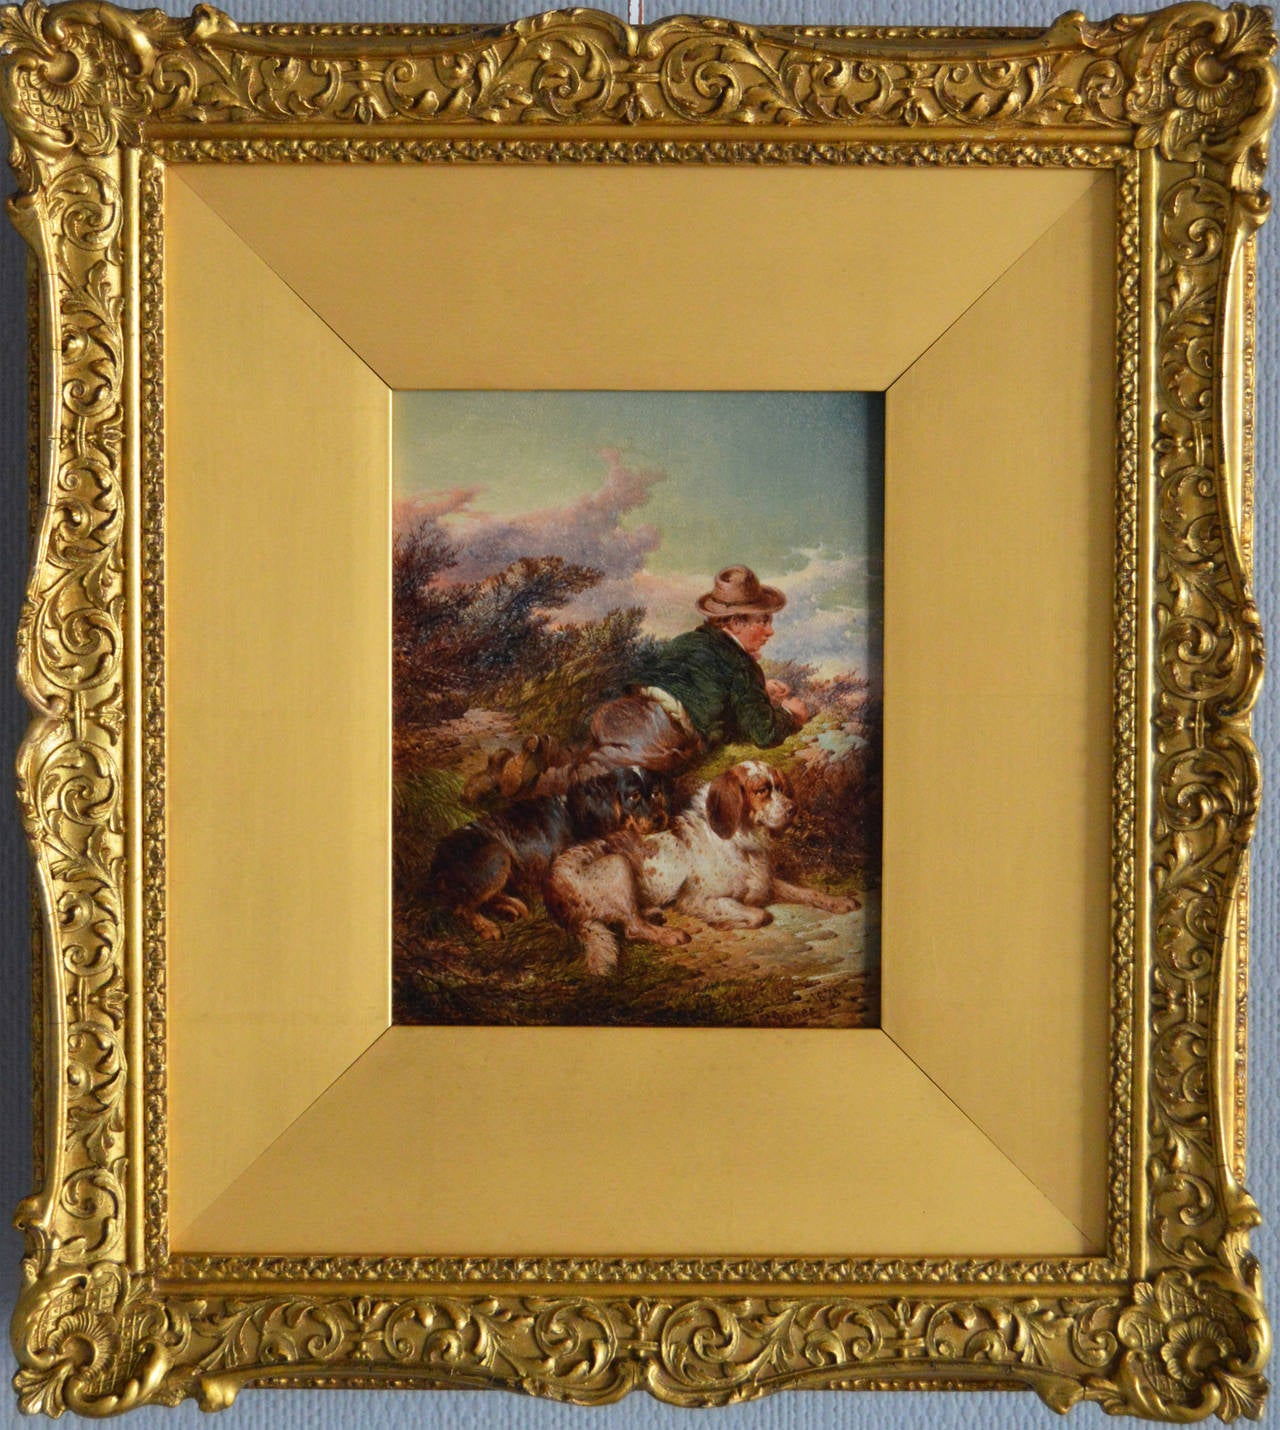 Sporting oil painting of a man with dogs by Paul Jones